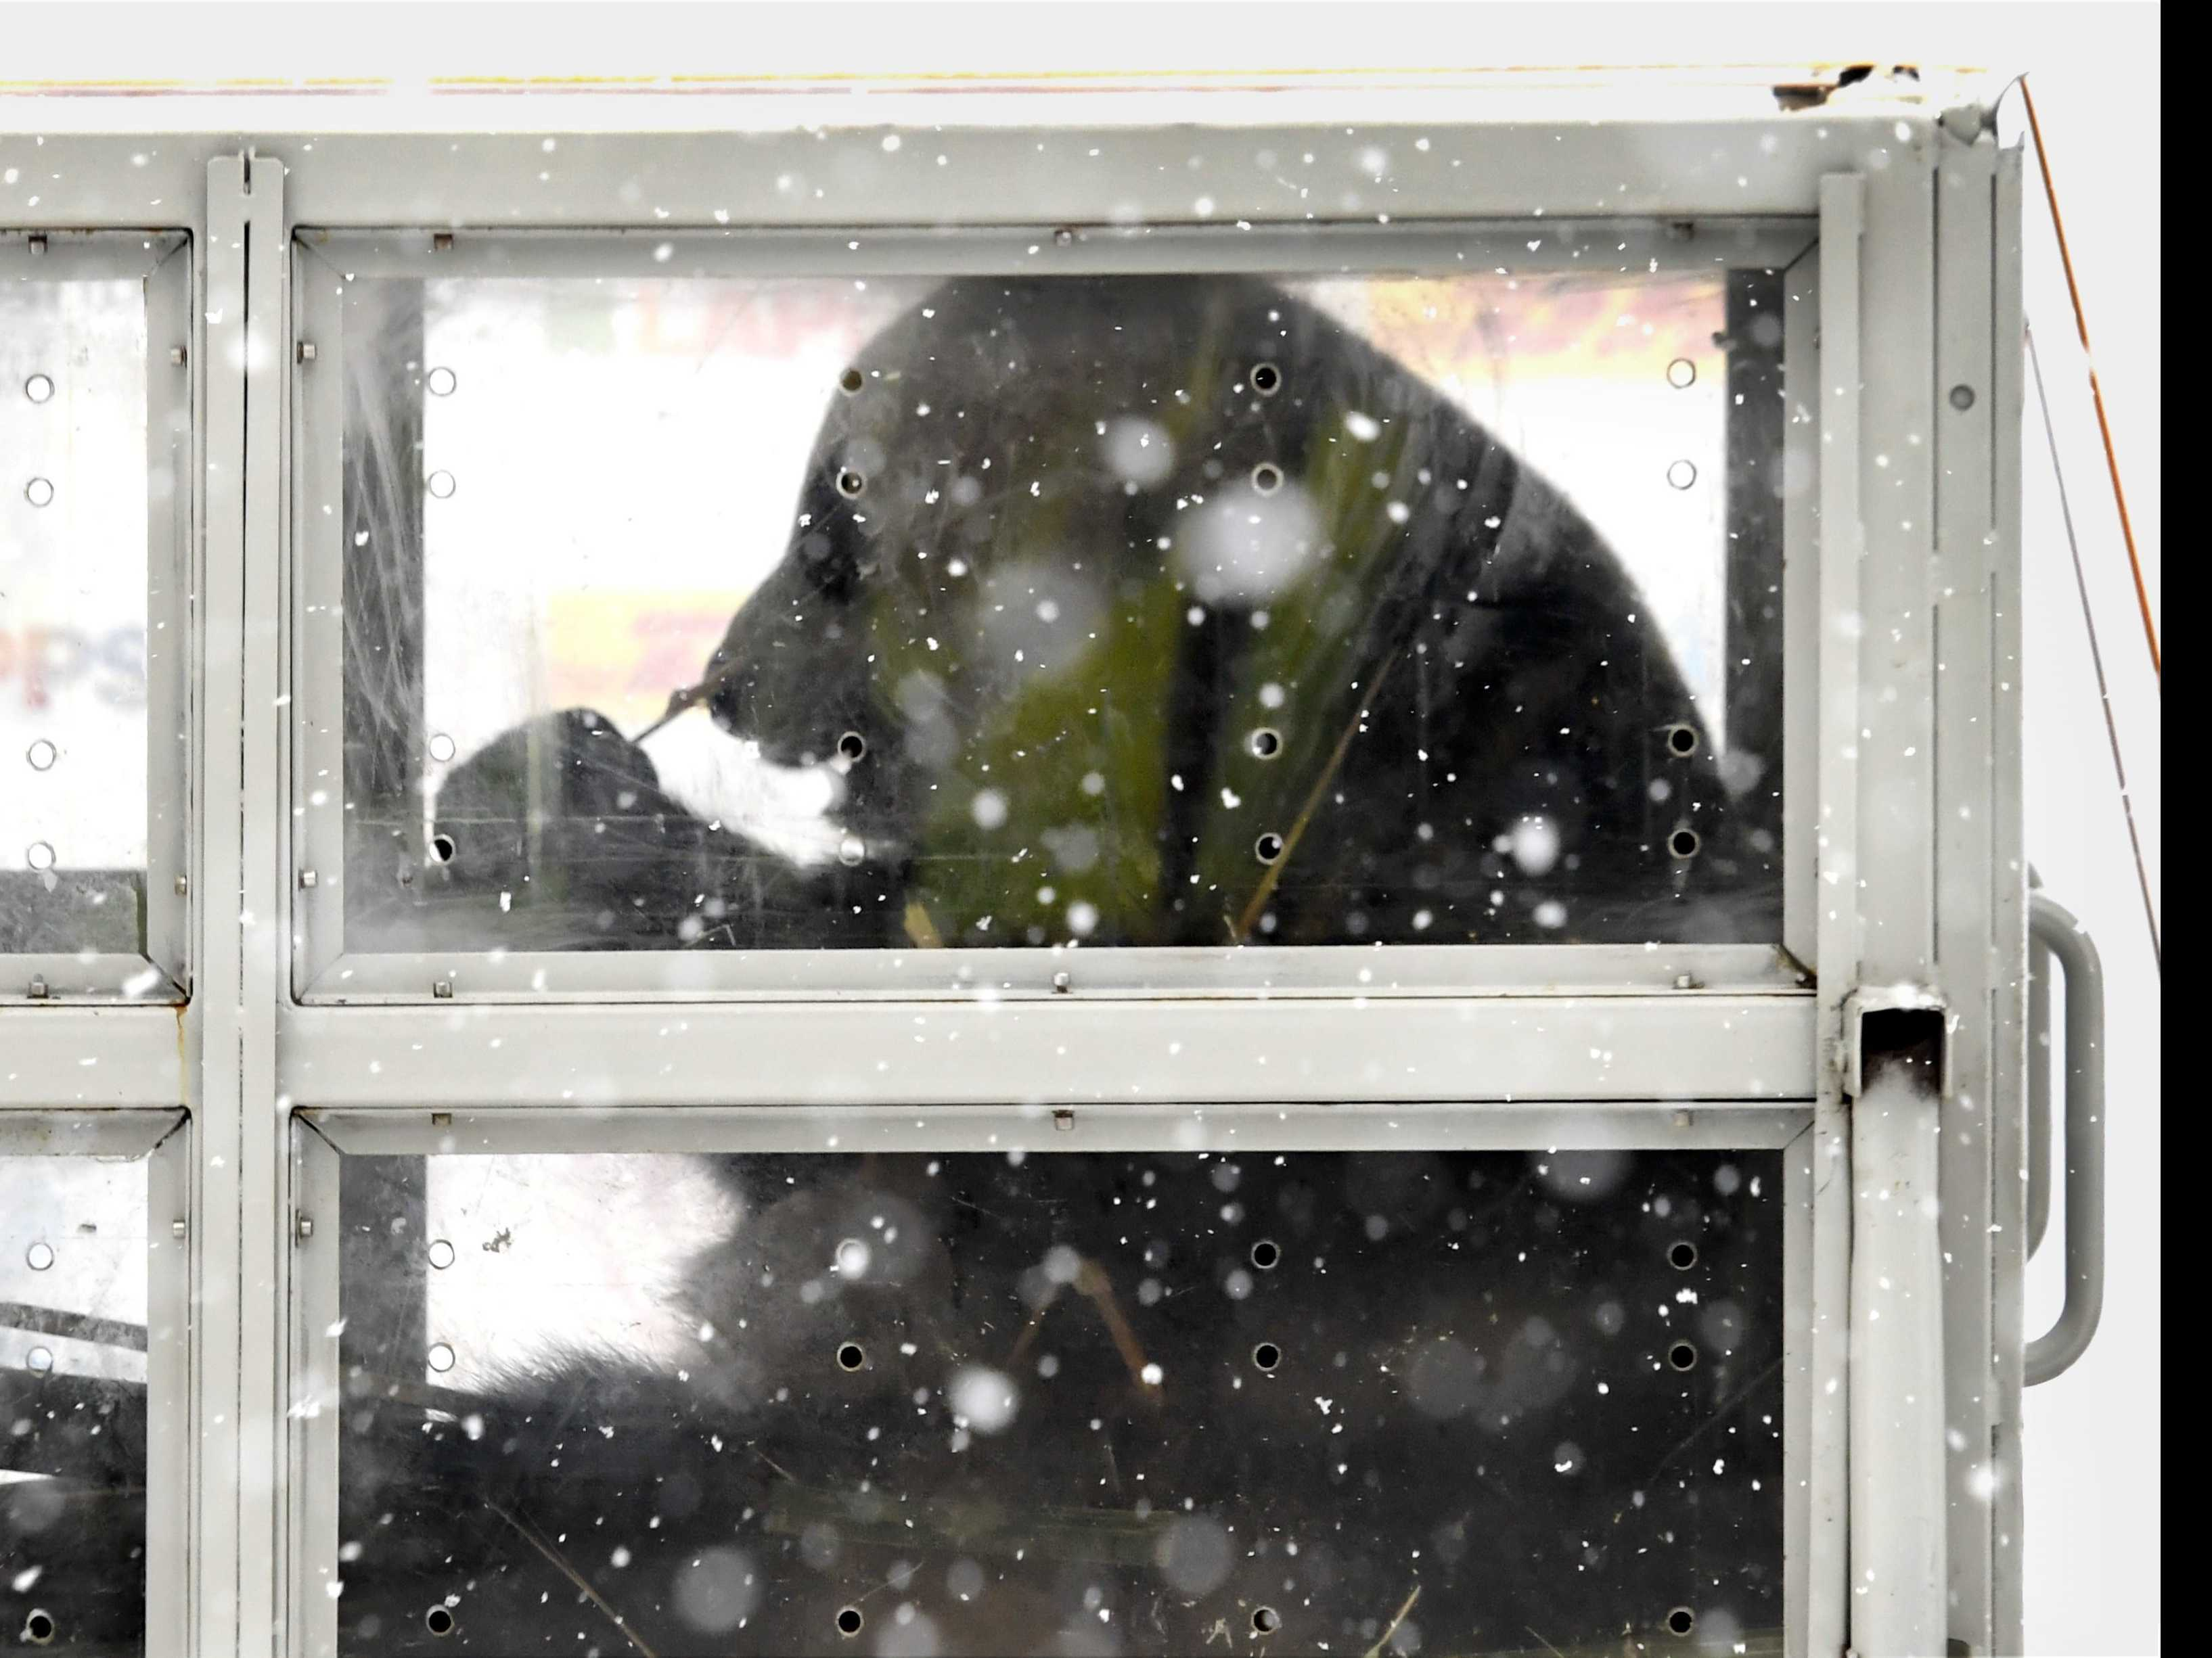 Pair of Chinese Giant Pandas Get Snowy Welcome in Finland